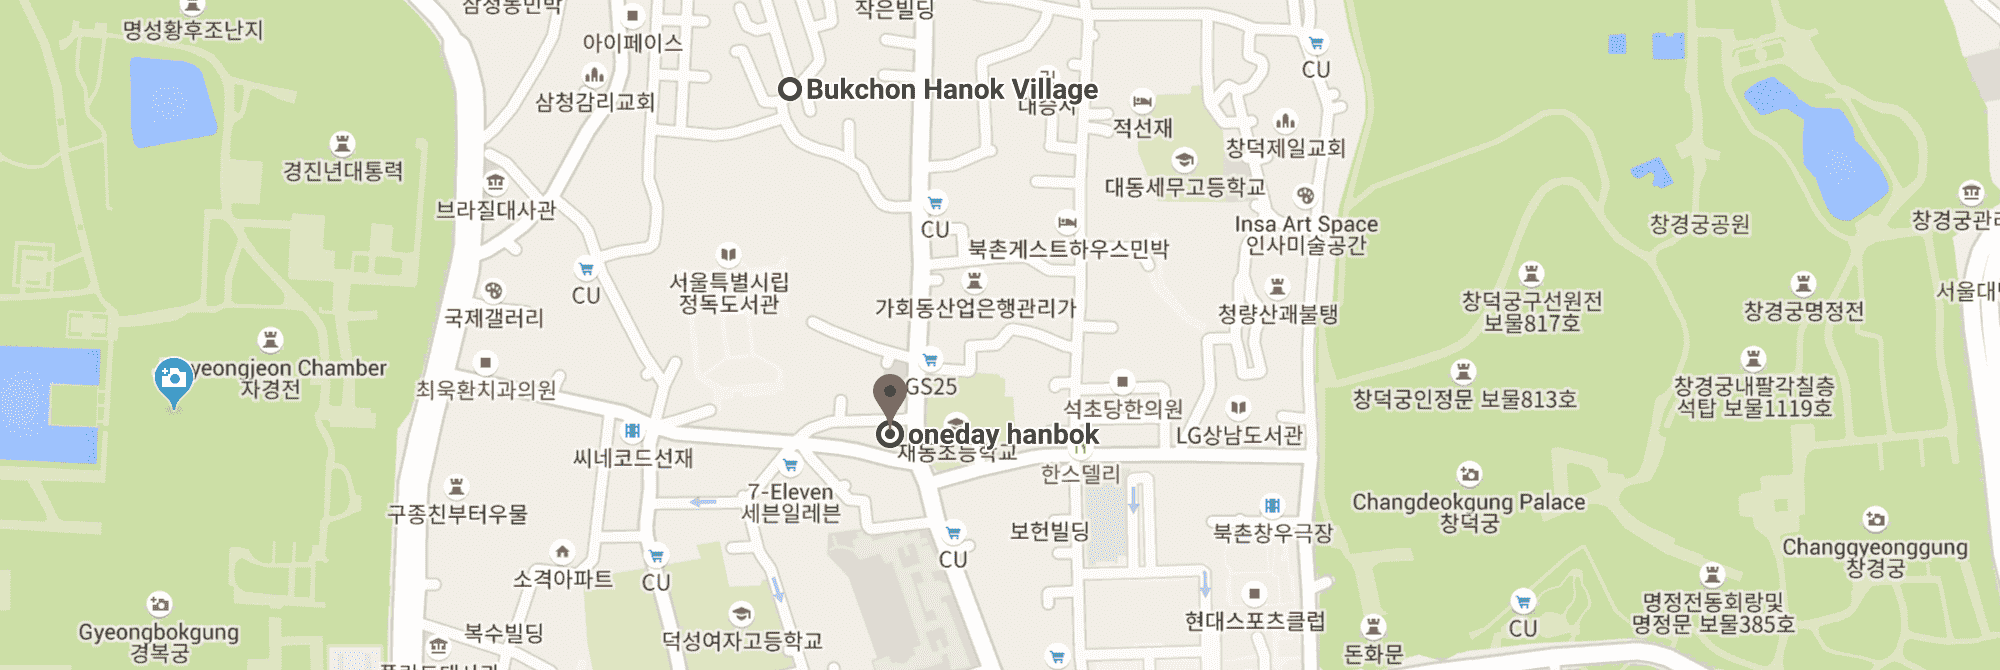 Location of  Oneday Hanbok  rental in Seoul. Screenshot from Google Maps